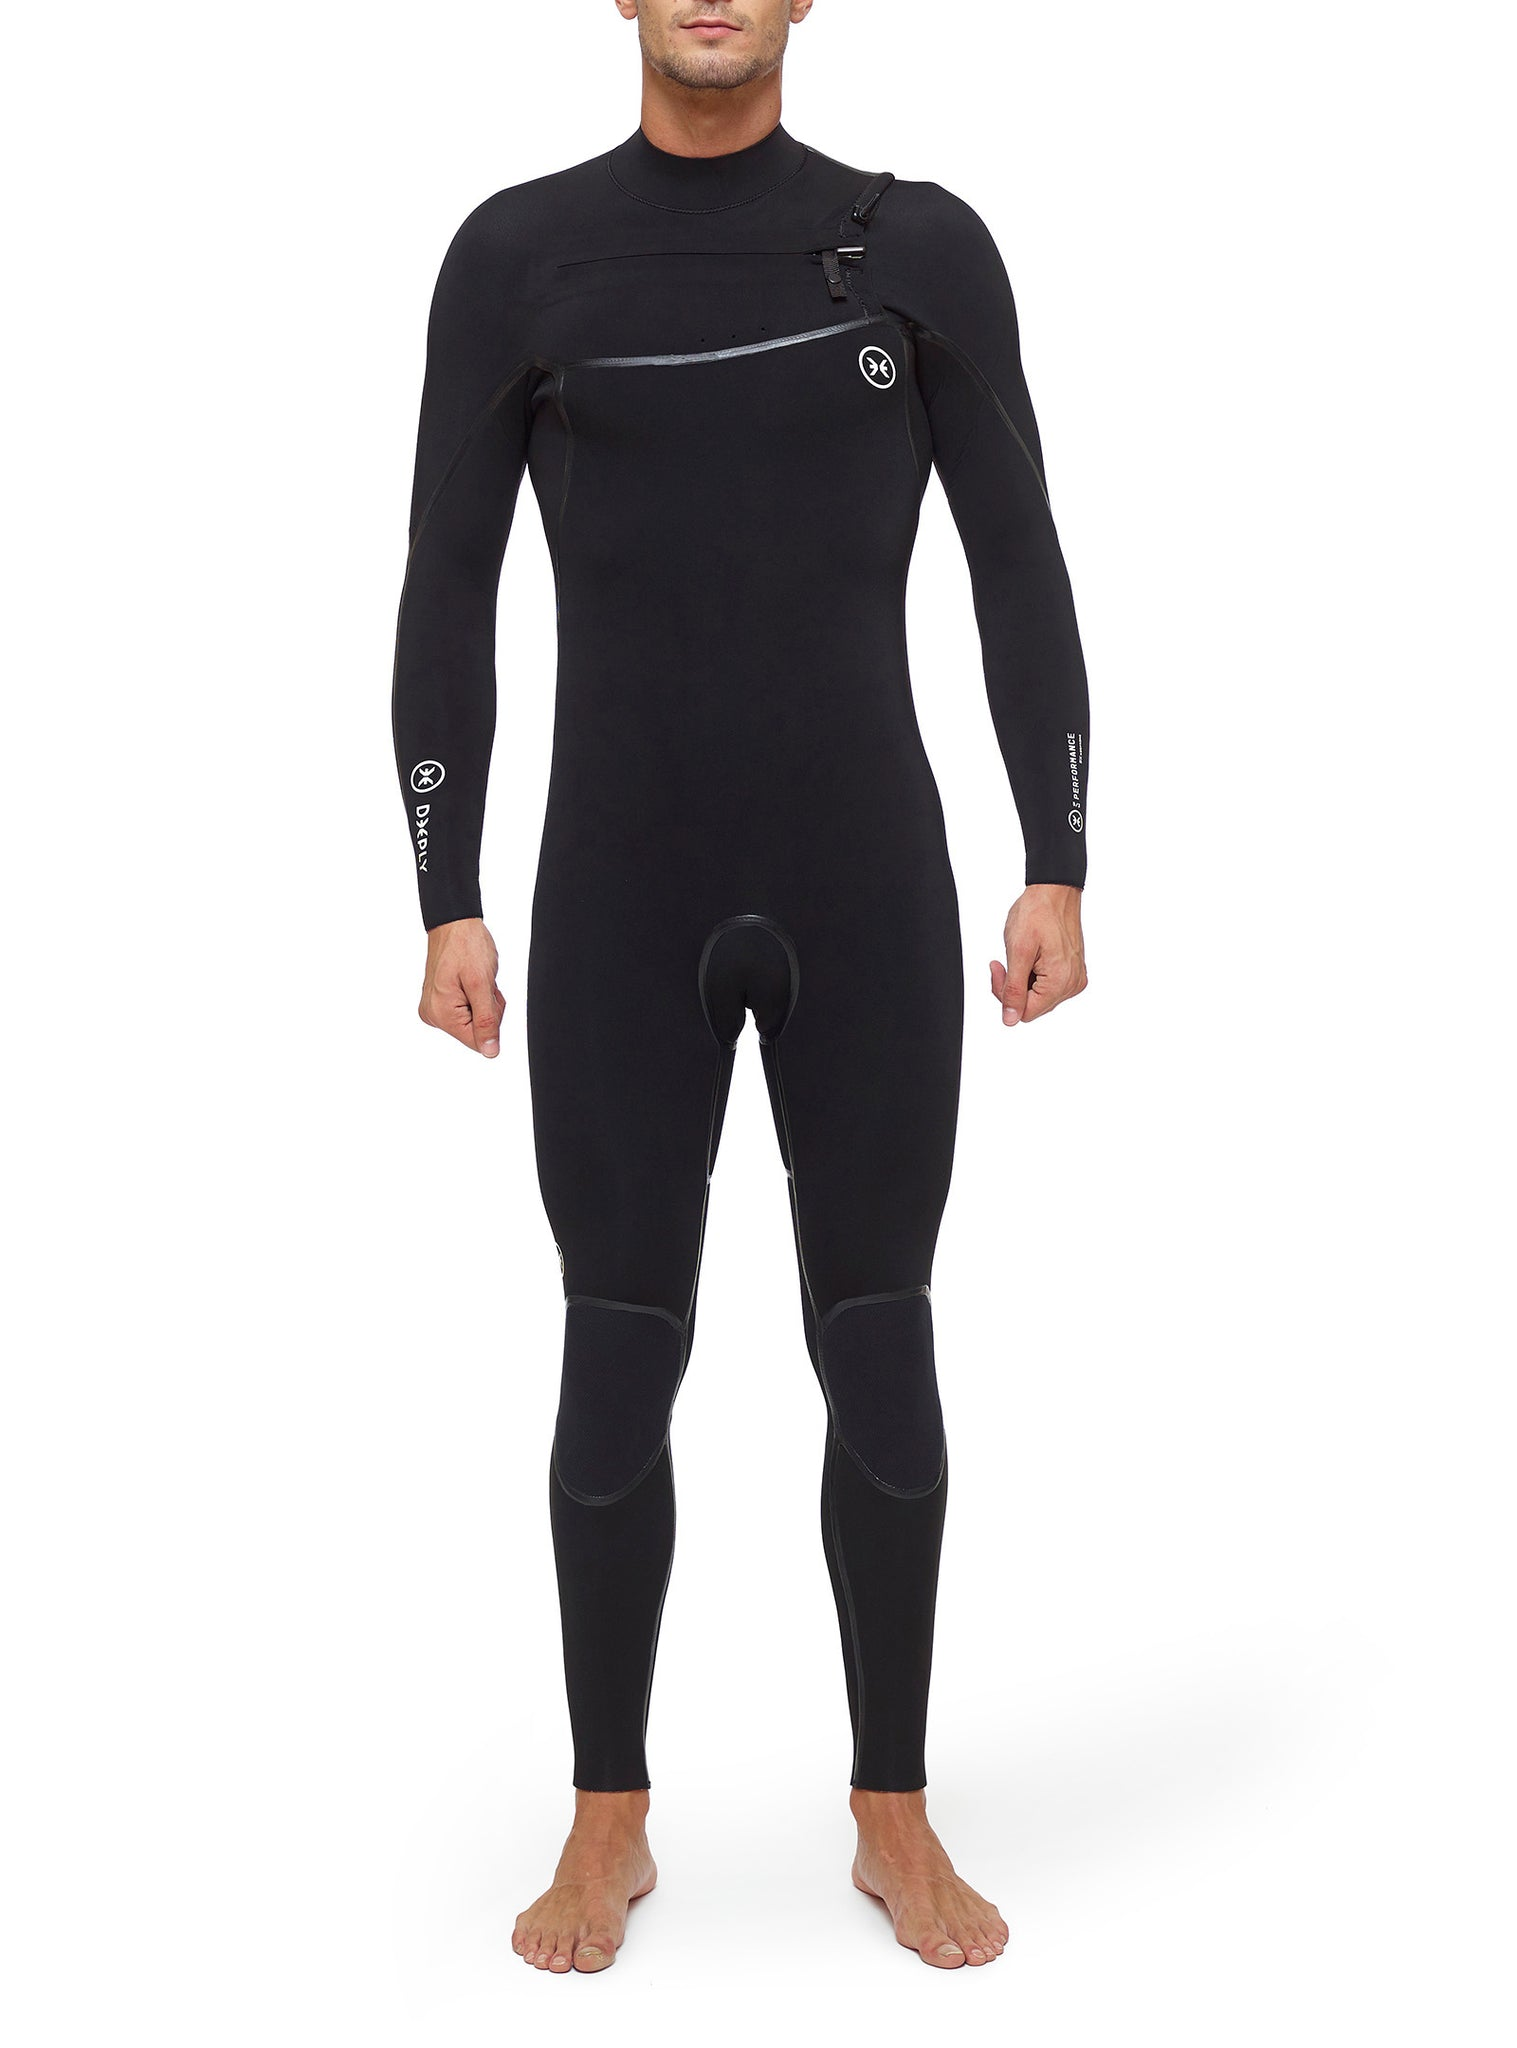 Wetsuit Man Performance 5/3 Chest Zip Black